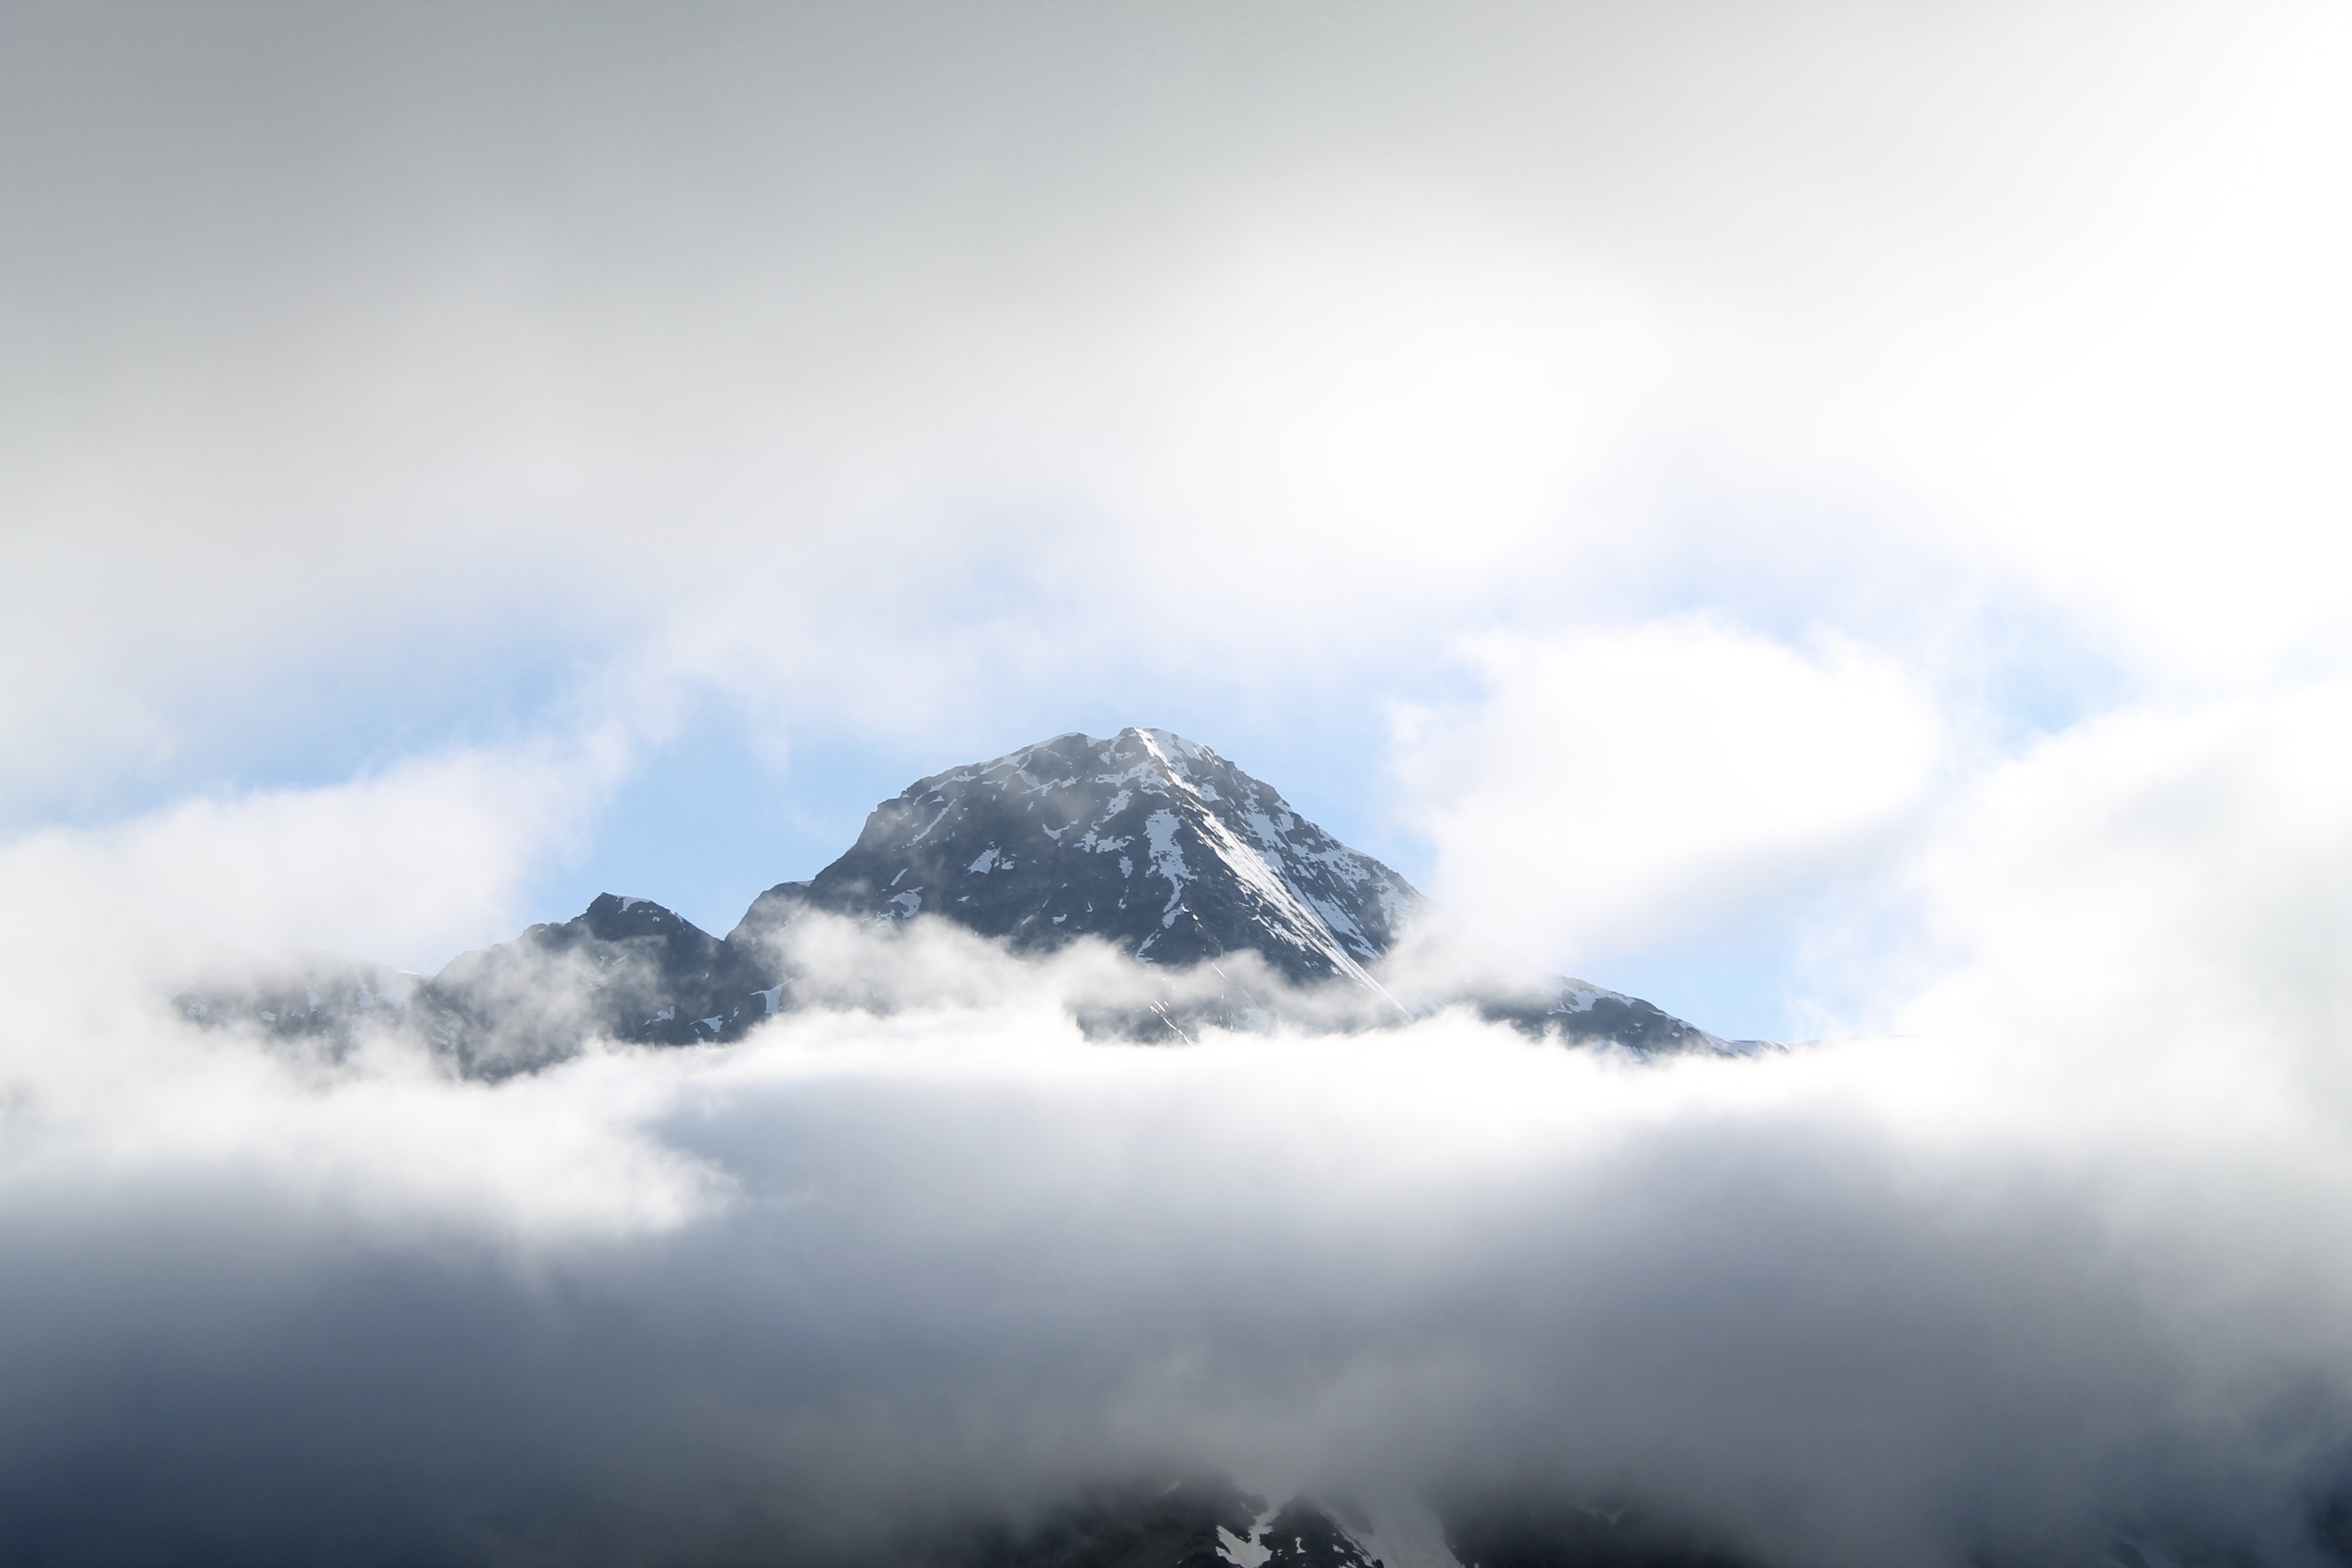 Thick clouds envelop a tall mountain peak, partly obscuring the view